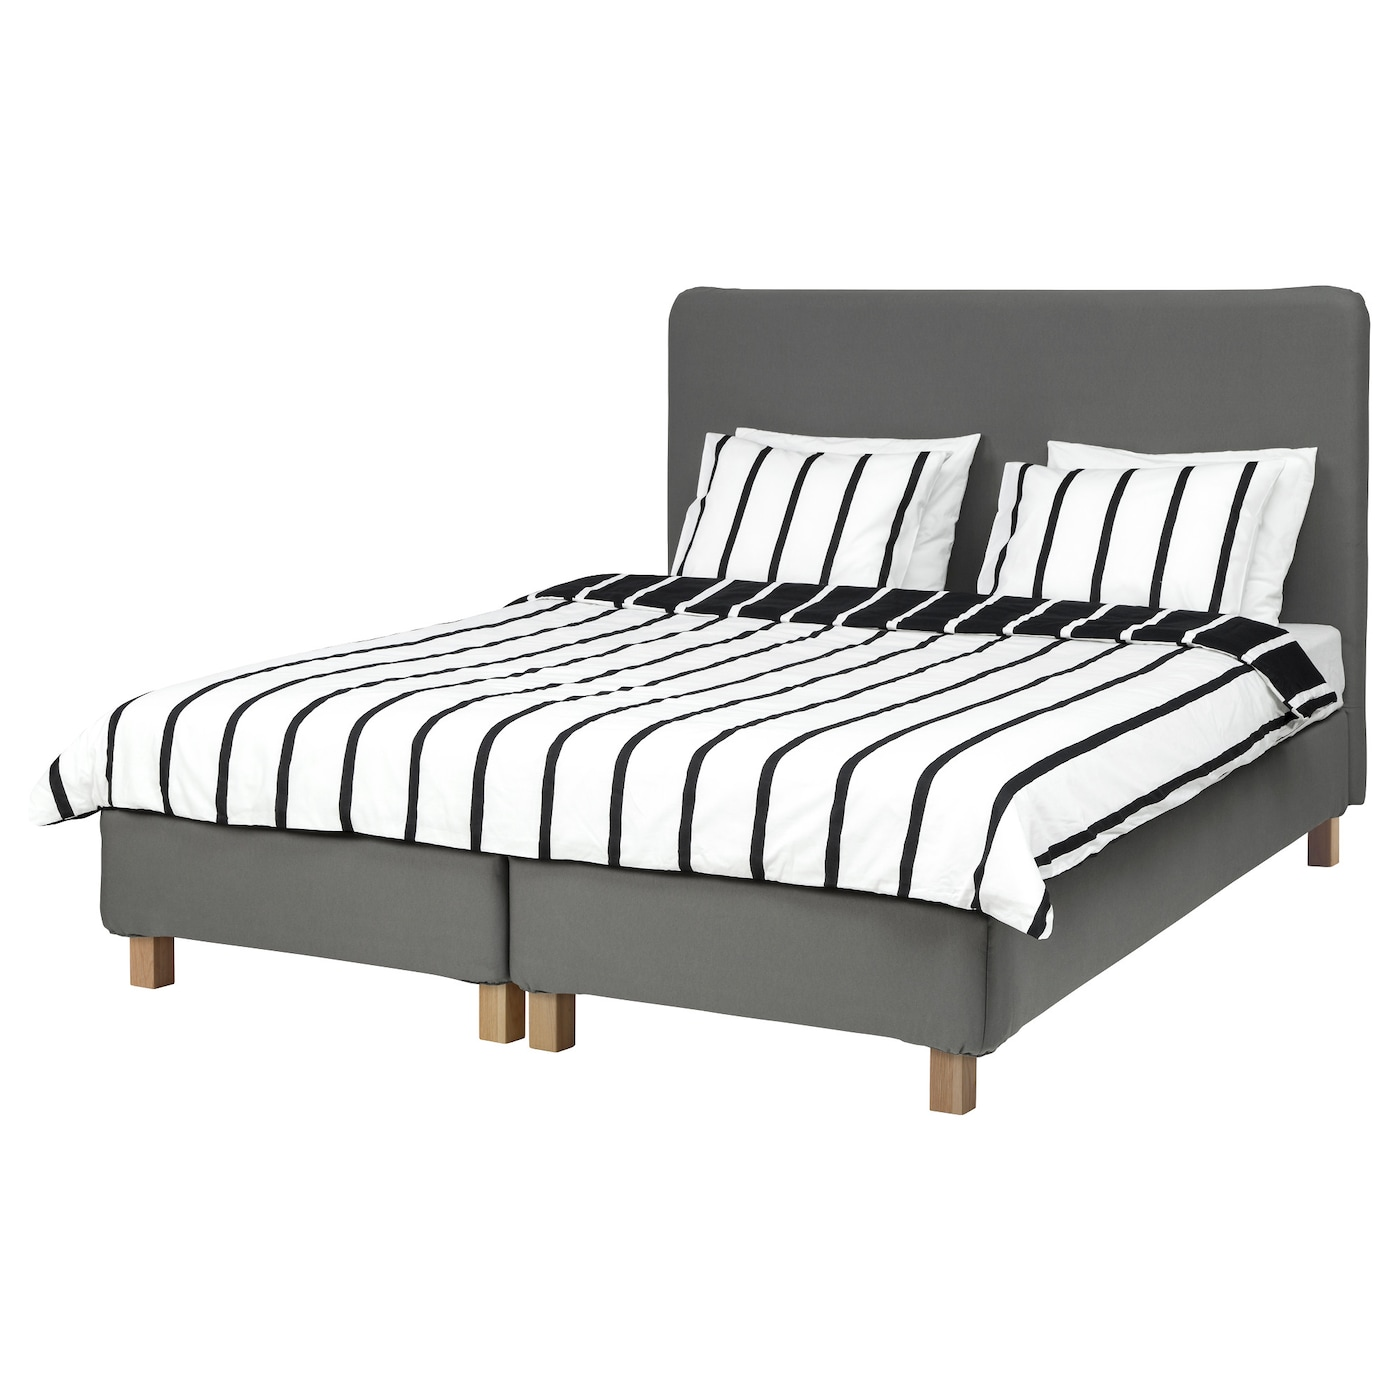 lauvik lit sommier tapissier hafslo ferme gris fonc 160 x 200 cm ikea. Black Bedroom Furniture Sets. Home Design Ideas